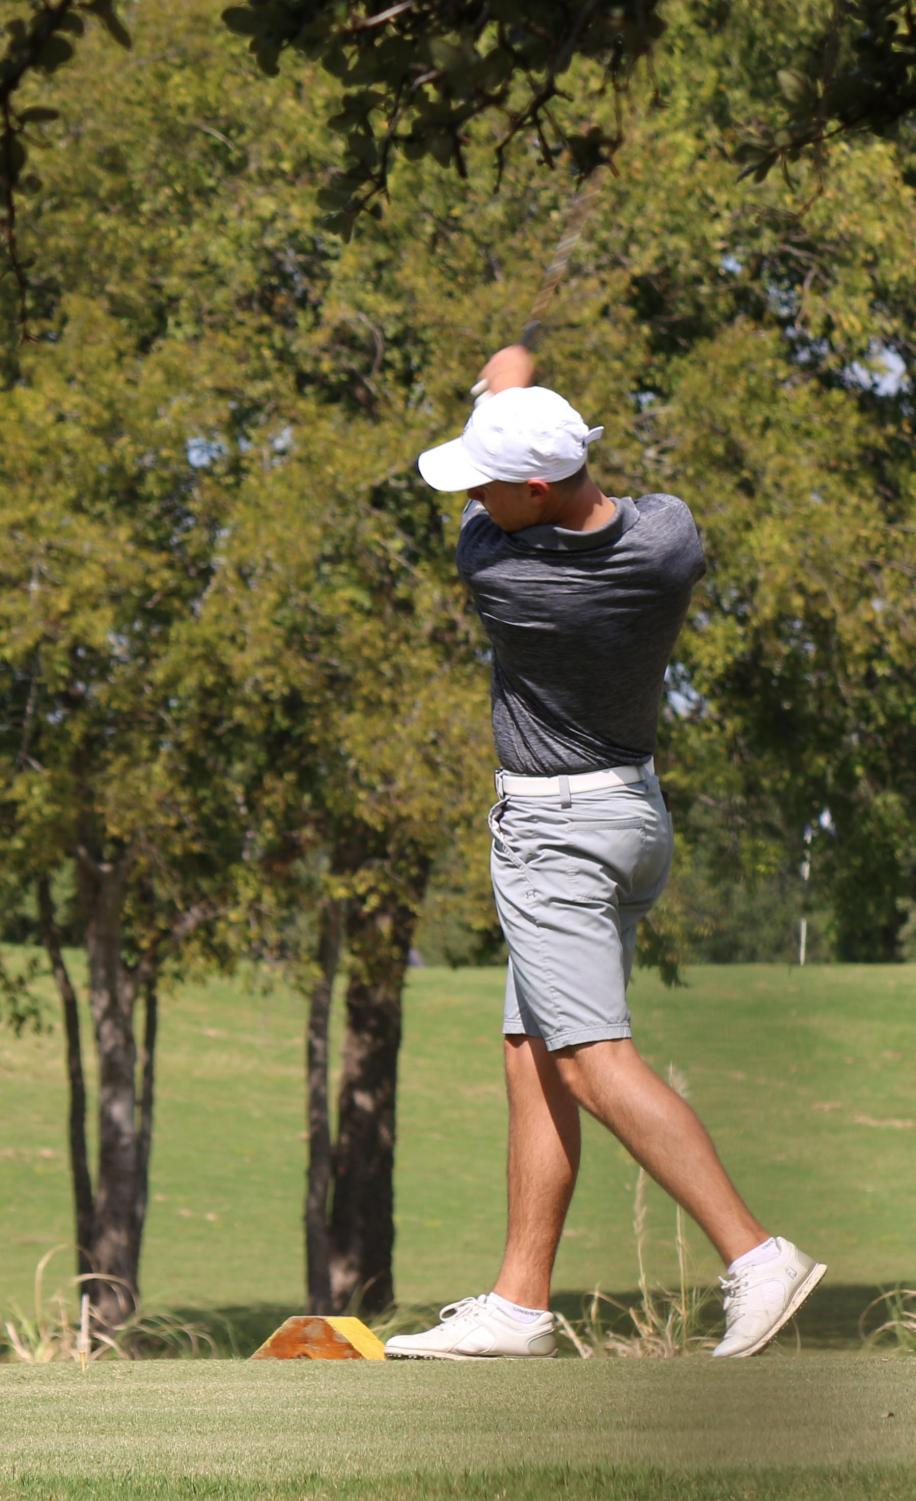 Junior Zach Willard earned trip to State. He's the first CTHS golfer to make it to State.